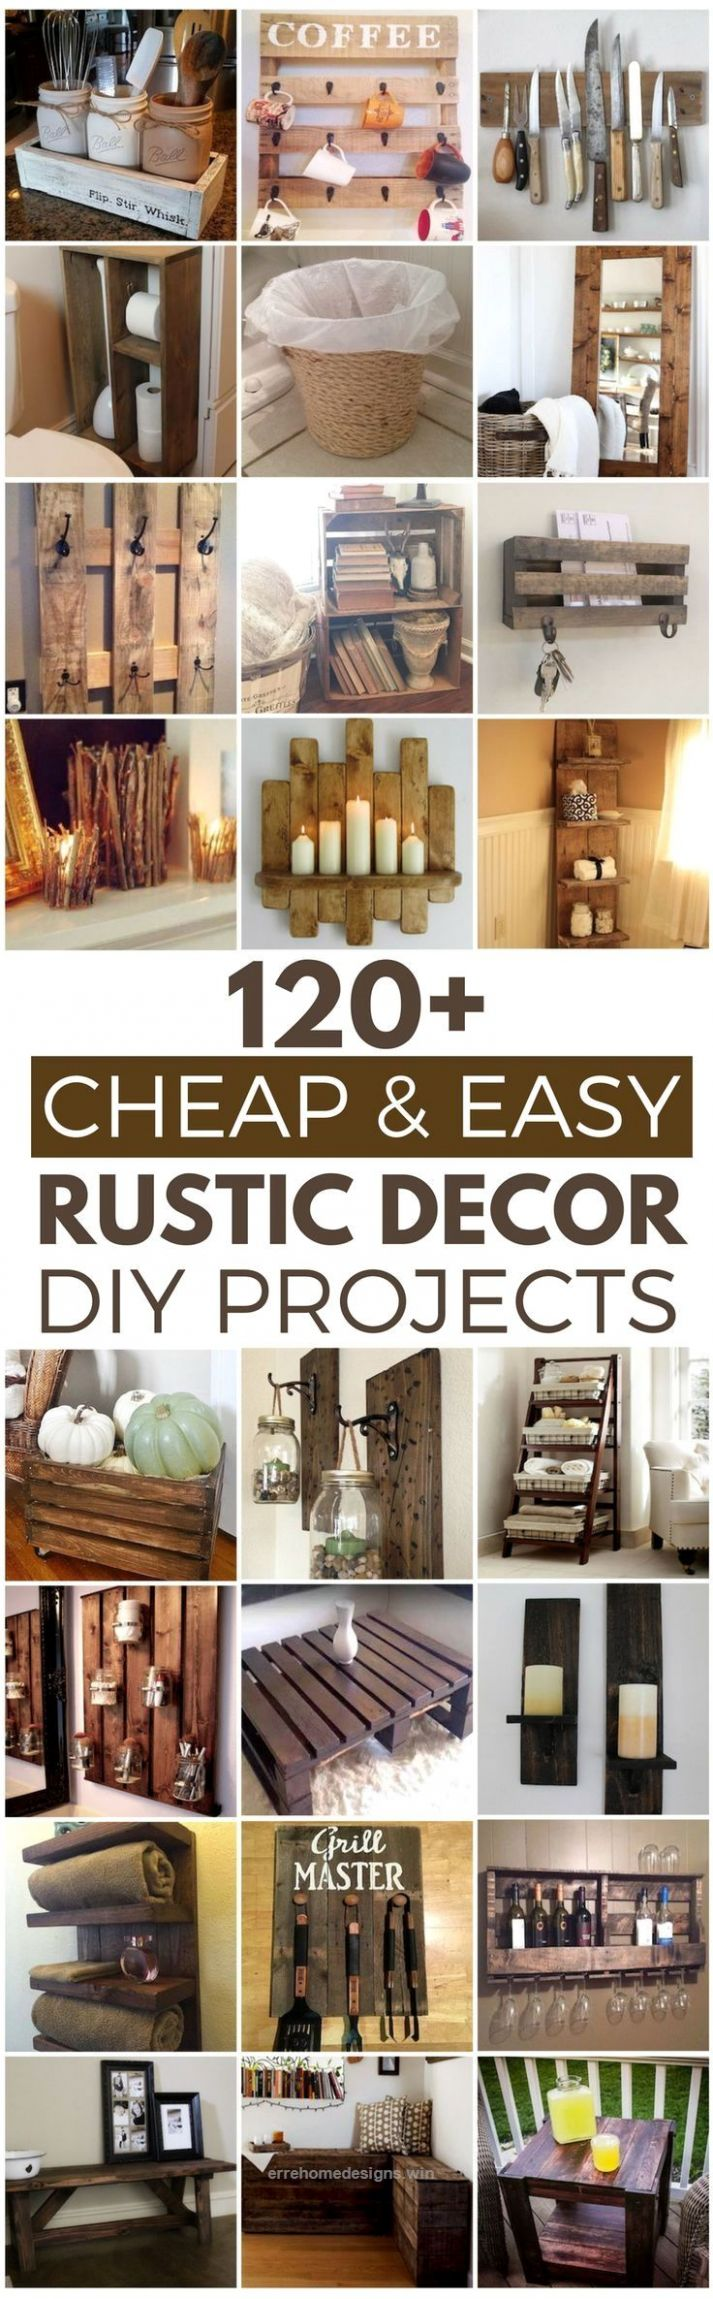 10 Cheap and Easy Rustic DIY Home Decor Ideas | Billige ..